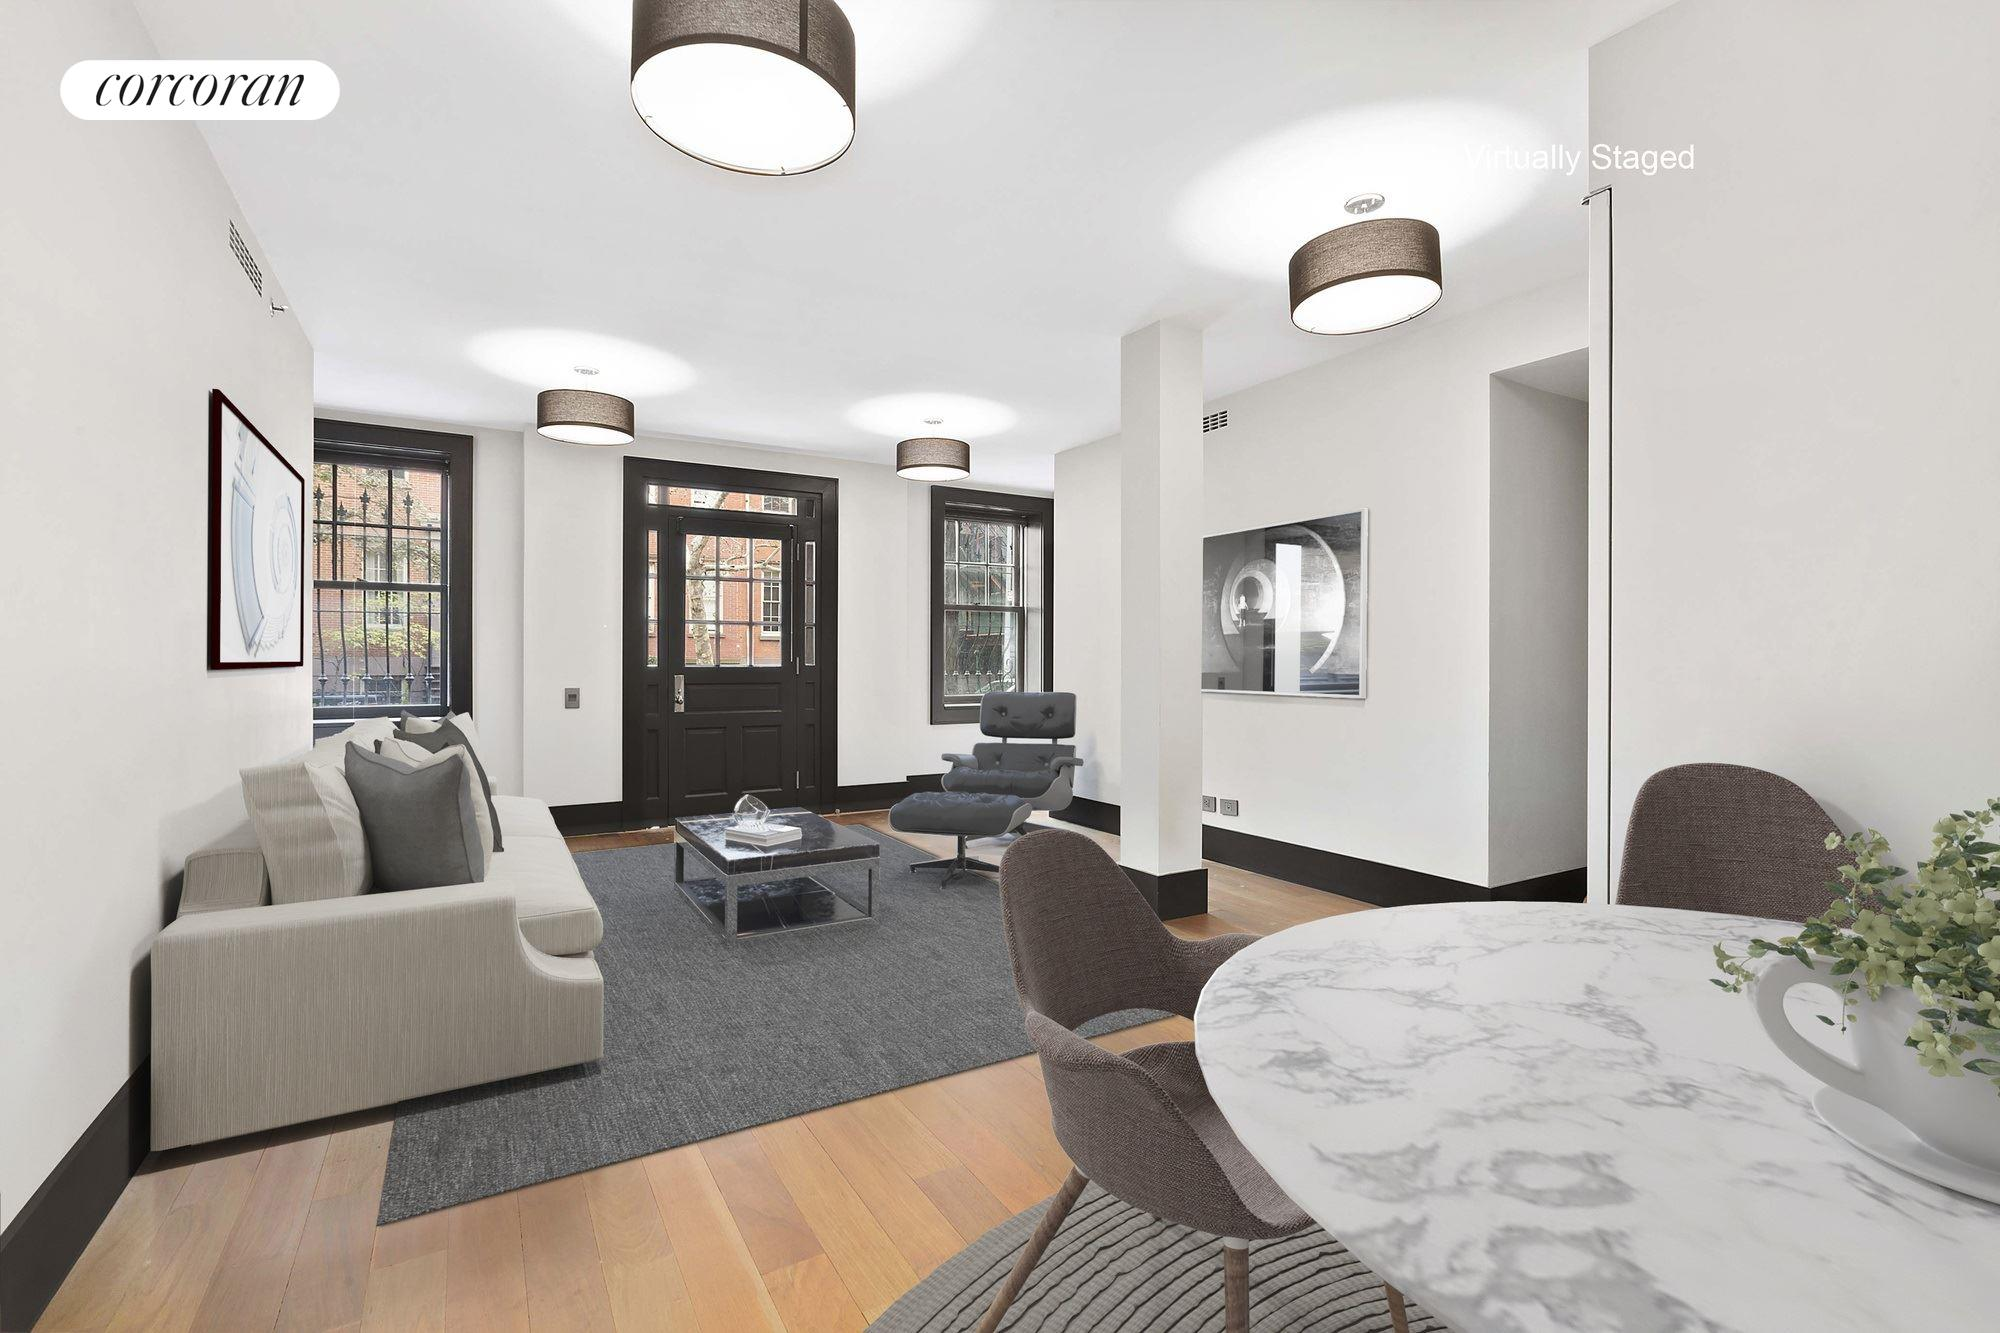 Corcoran, 327-329 West 22nd Street, Apt. 3, Chelsea/Hudson Yards ...